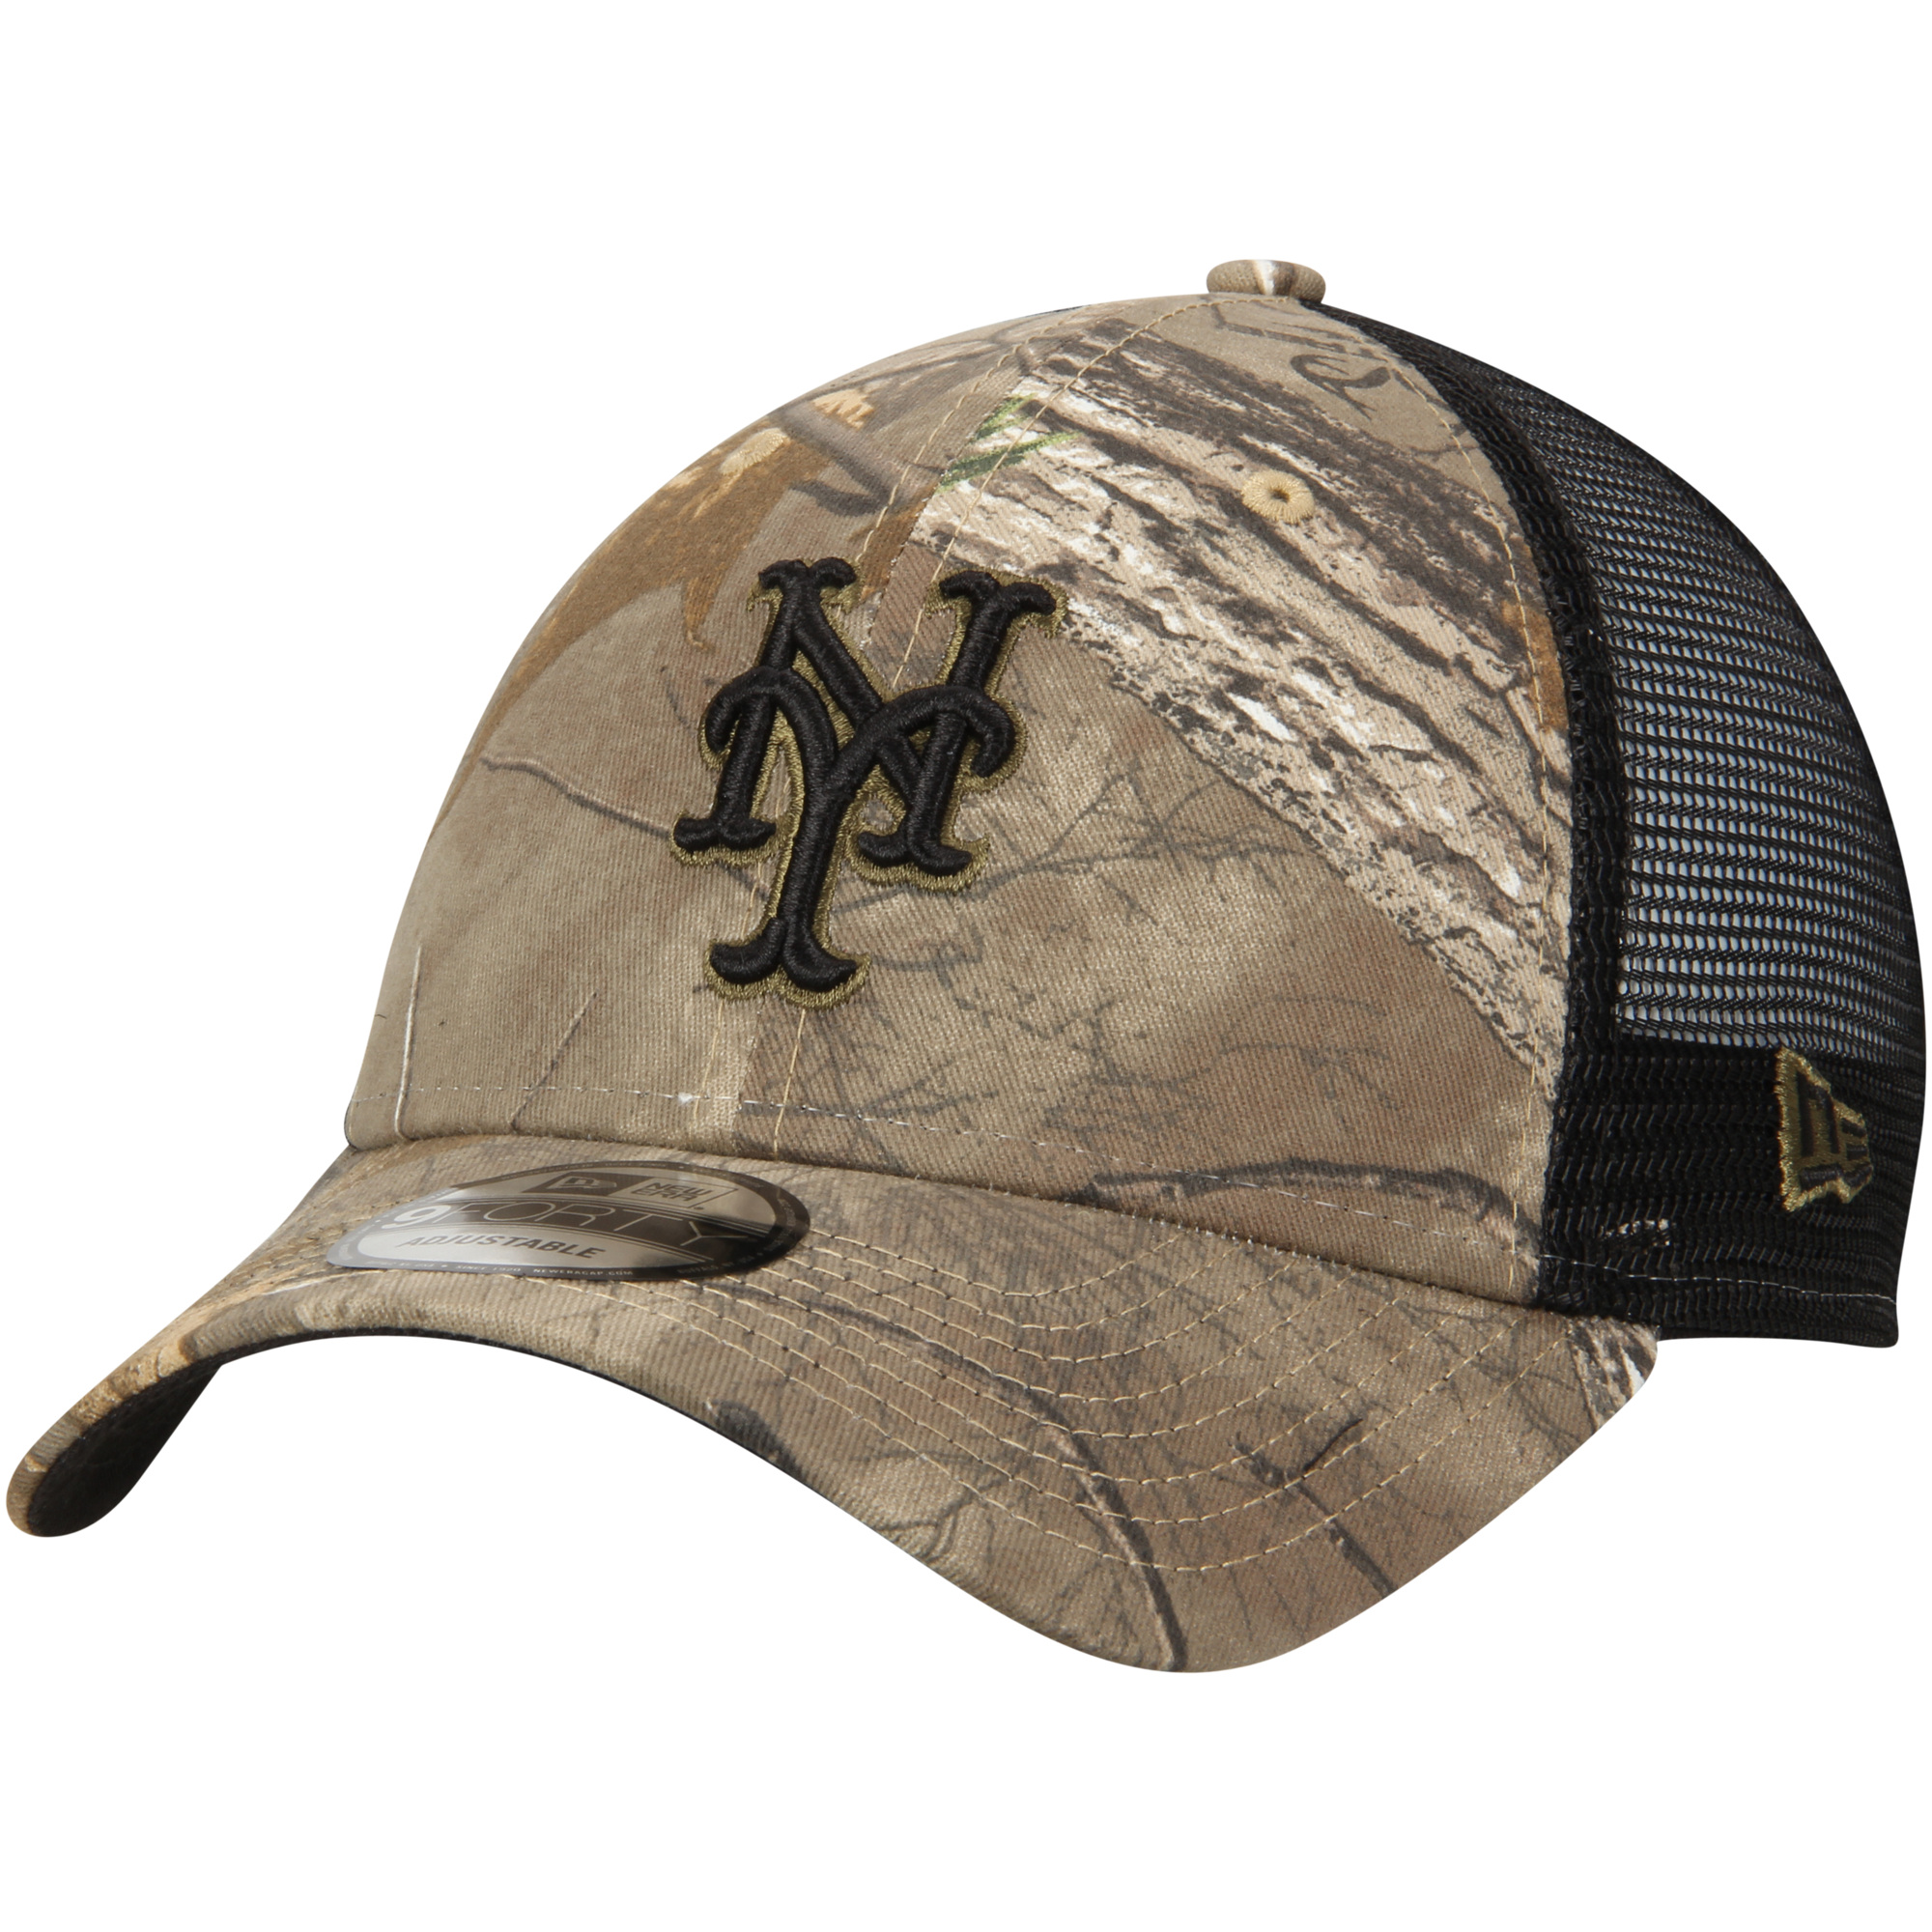 New York Mets New Era Realtree Trucker 9FORTY Adjustable Snapback Hat - Camo Black  - OSFA - Walmart.com f6f35048f49